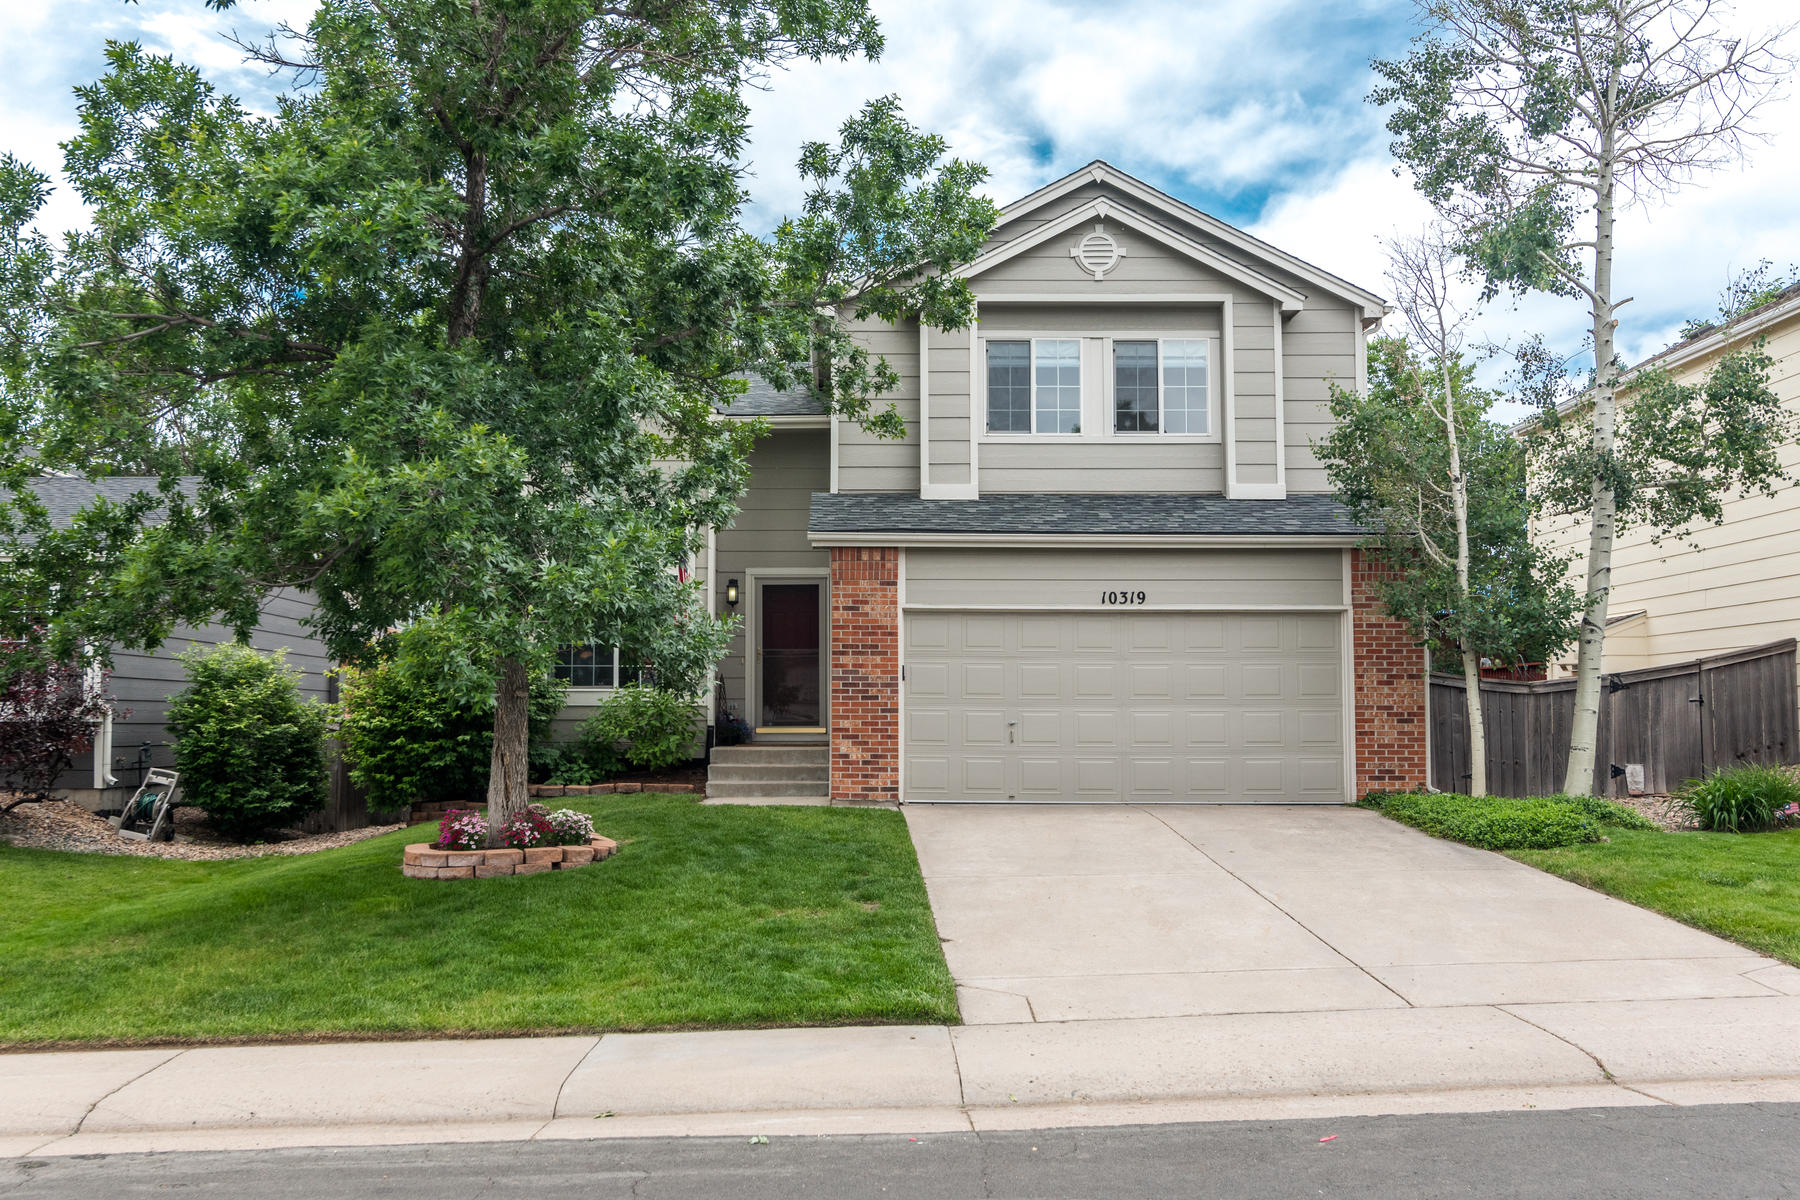 Single Family Homes for Sale at This charming home in Westridge Village is exactly what you are looking for! 10319 Woodrose Ln Highlands Ranch, Colorado 80129 United States